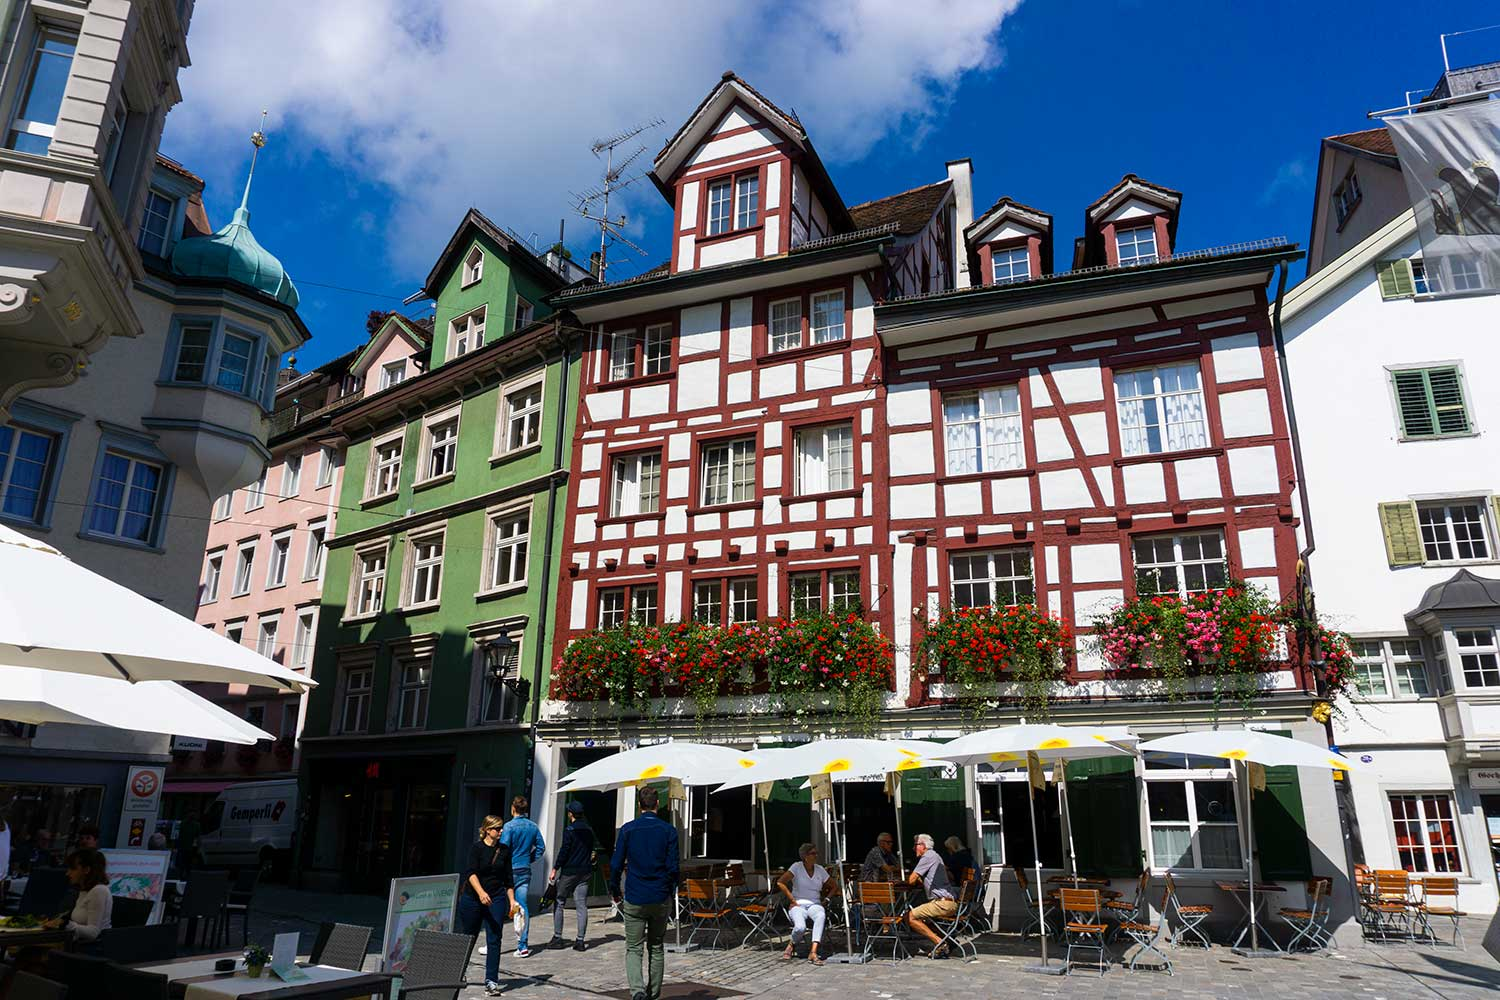 A colorful timbered building in St. Gallen, Switzerland with flowers in the window boxes.